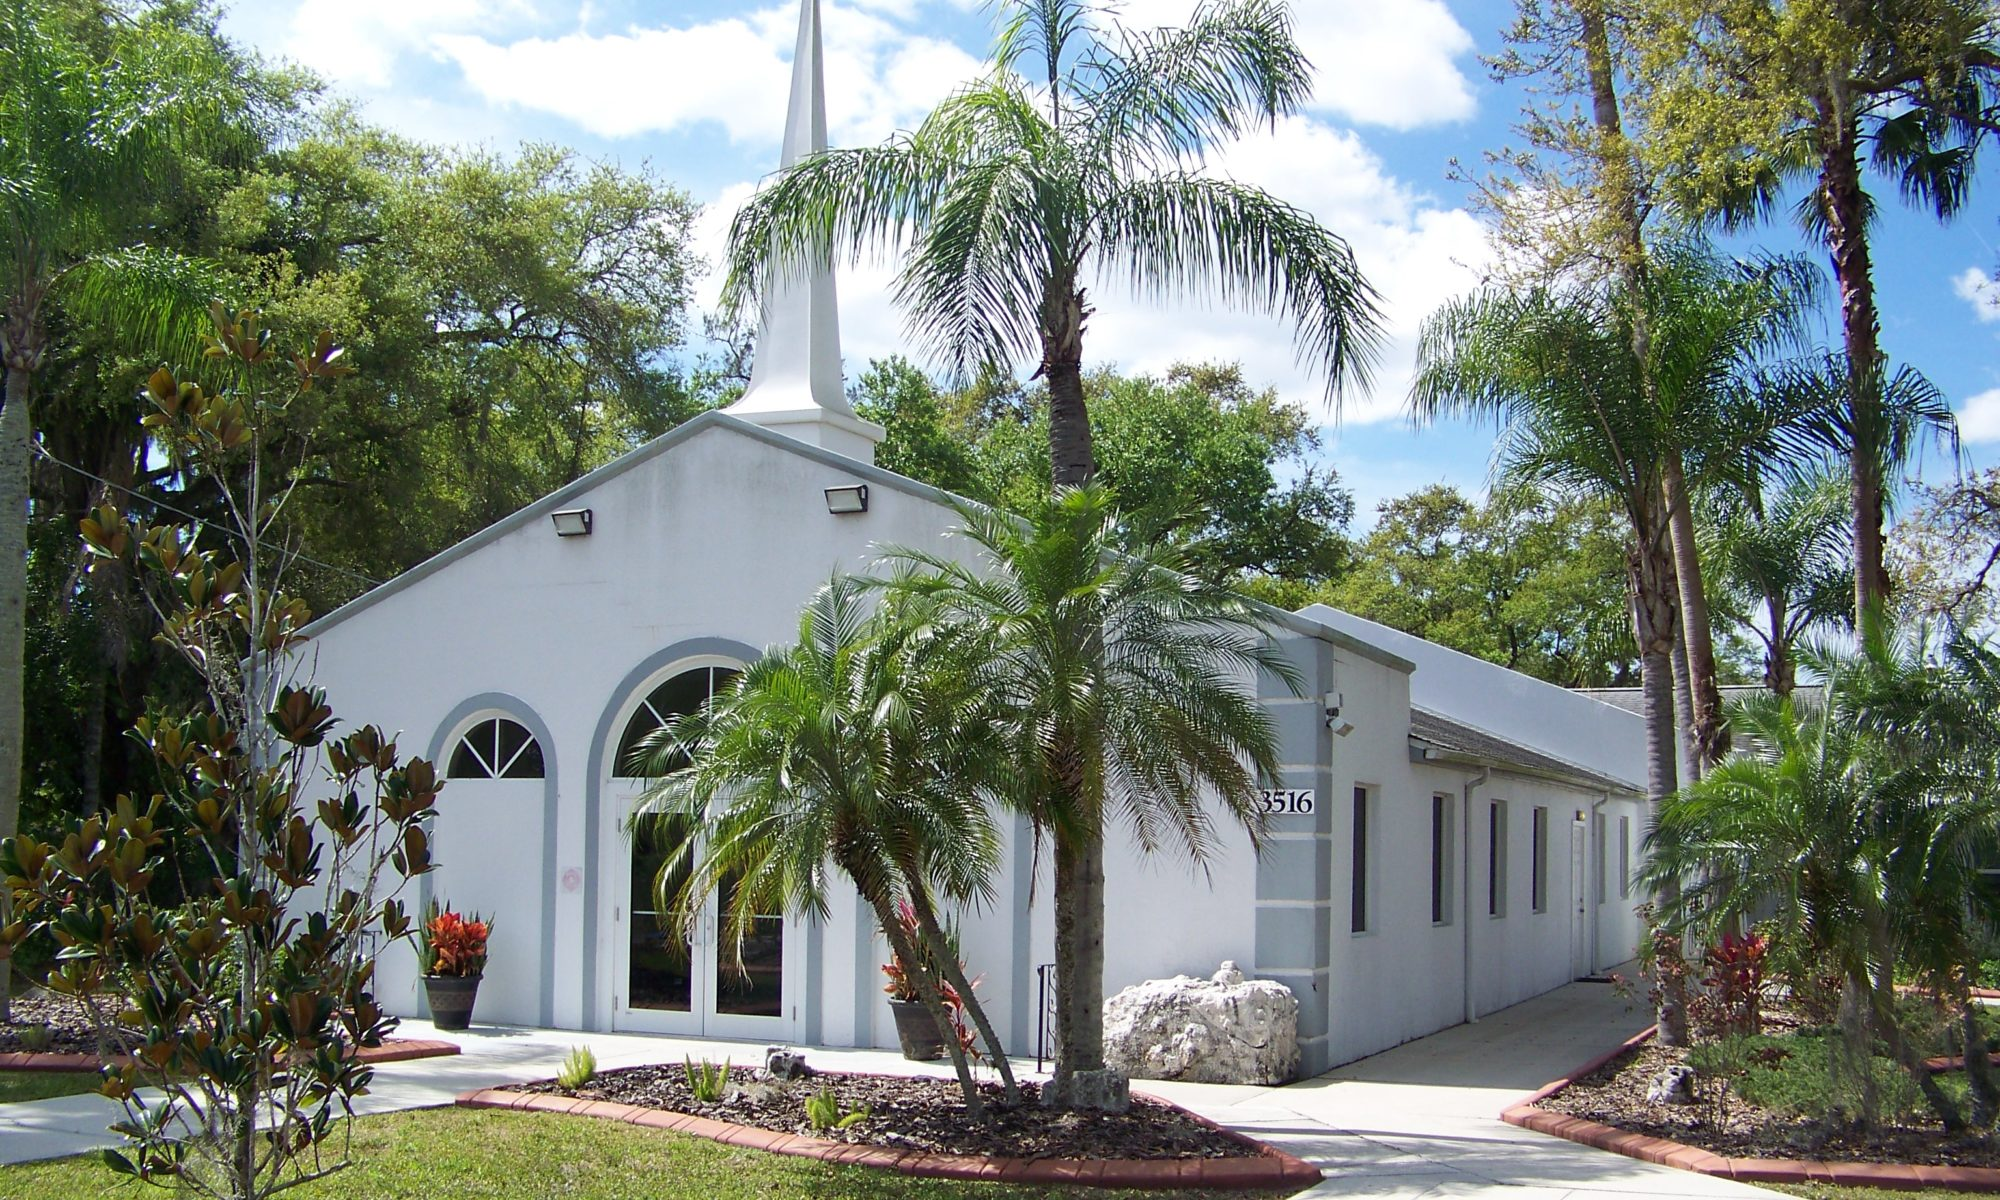 Elwood Park Baptist Church